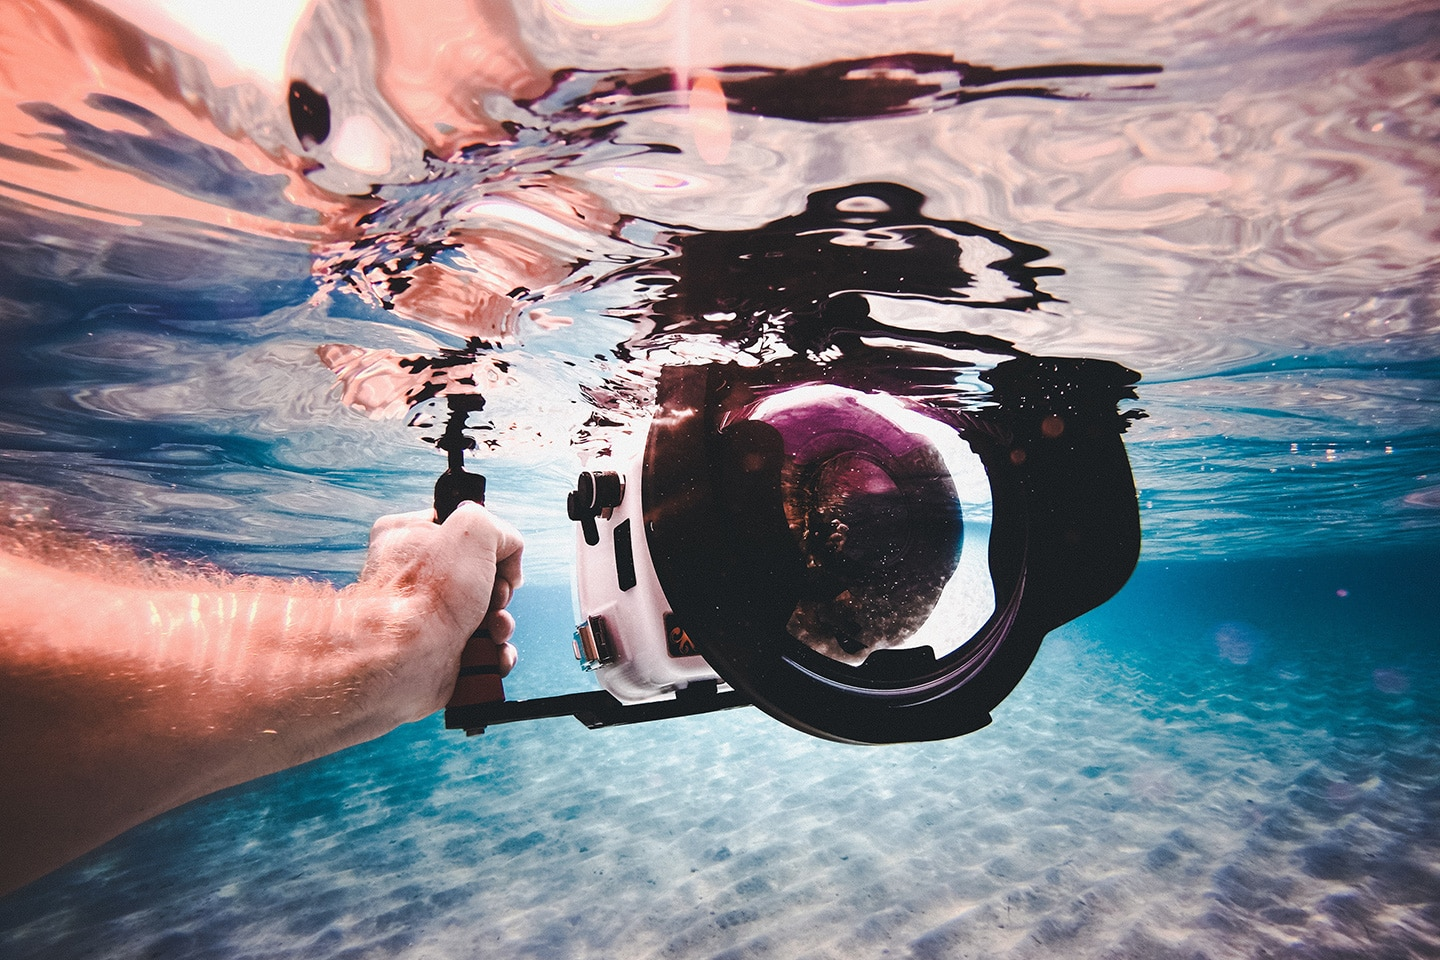 Underwater camera and lens